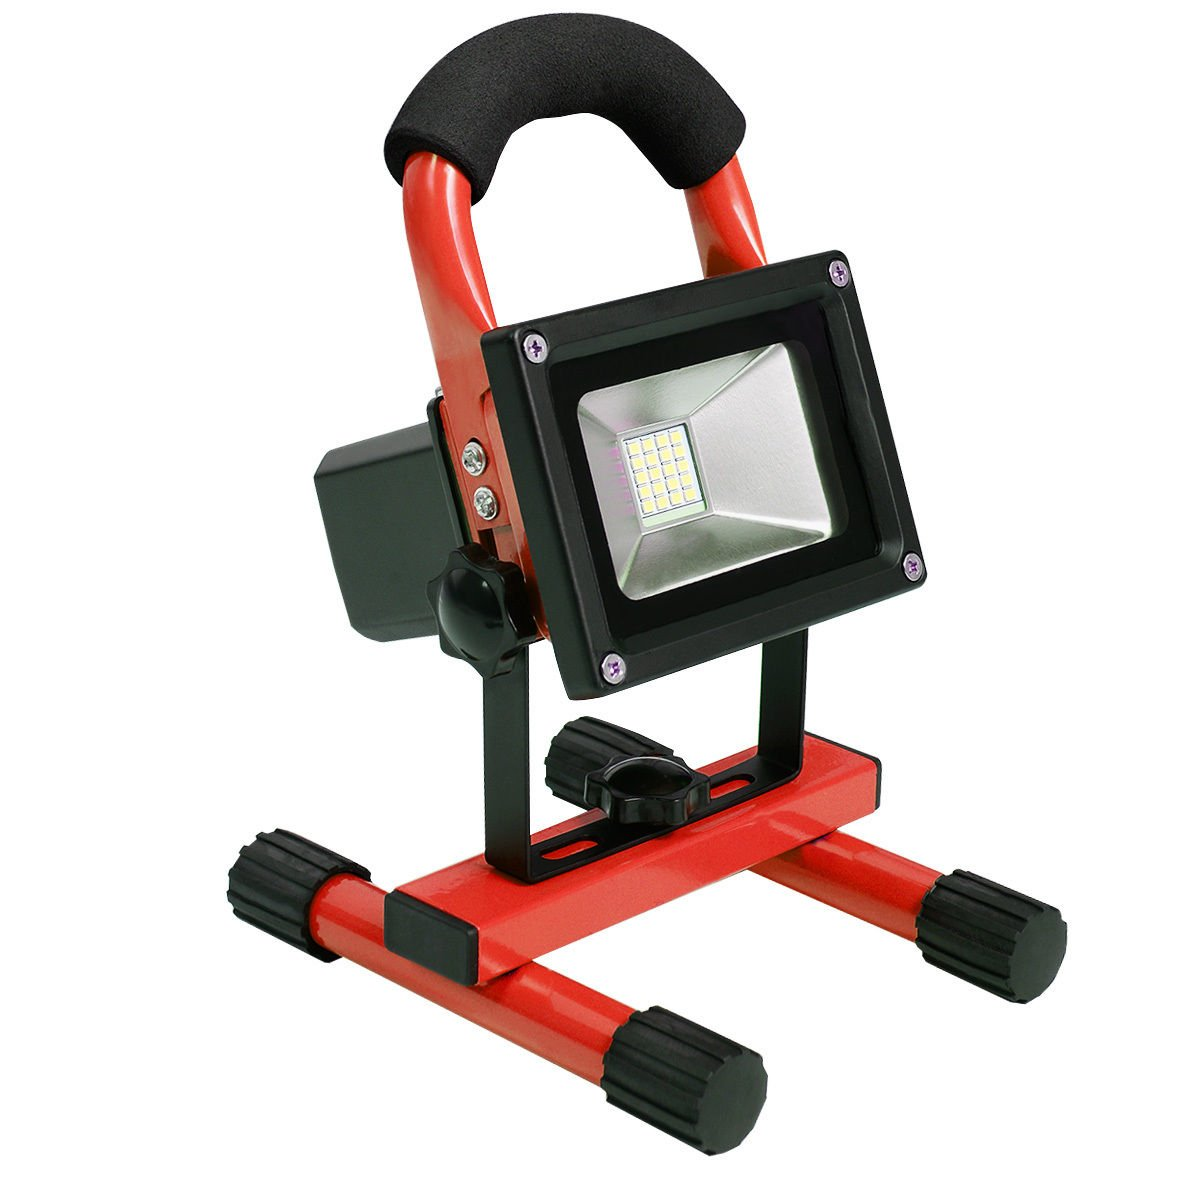 Red Portable 10W Cordless Work Light Rechargeable LED Flood Spot Camping Lamp by Marketworldcup (Image #3)